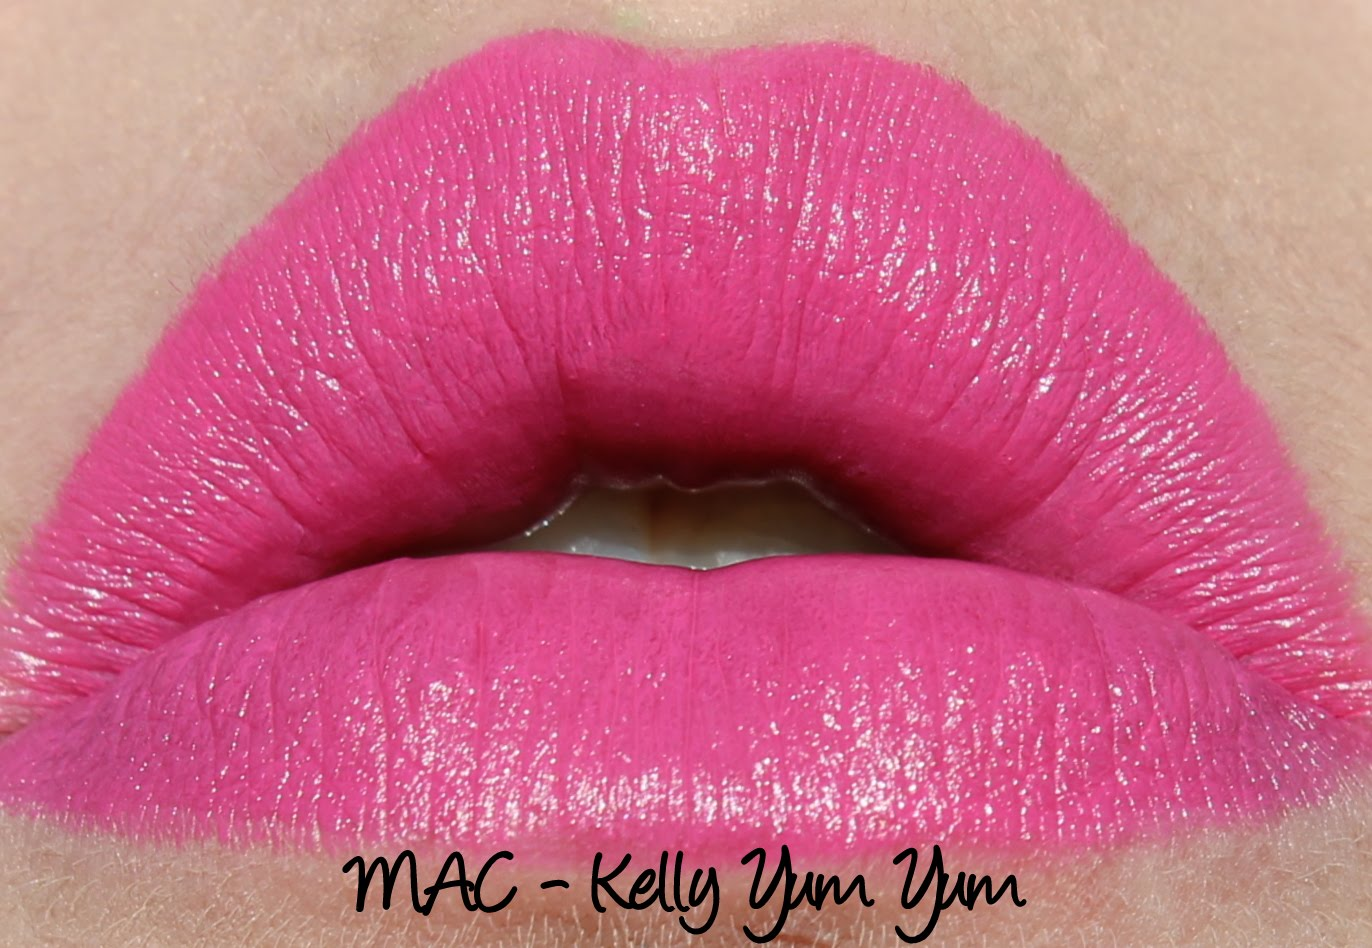 MAC Kelly Yum Yum Lipstick Swatch